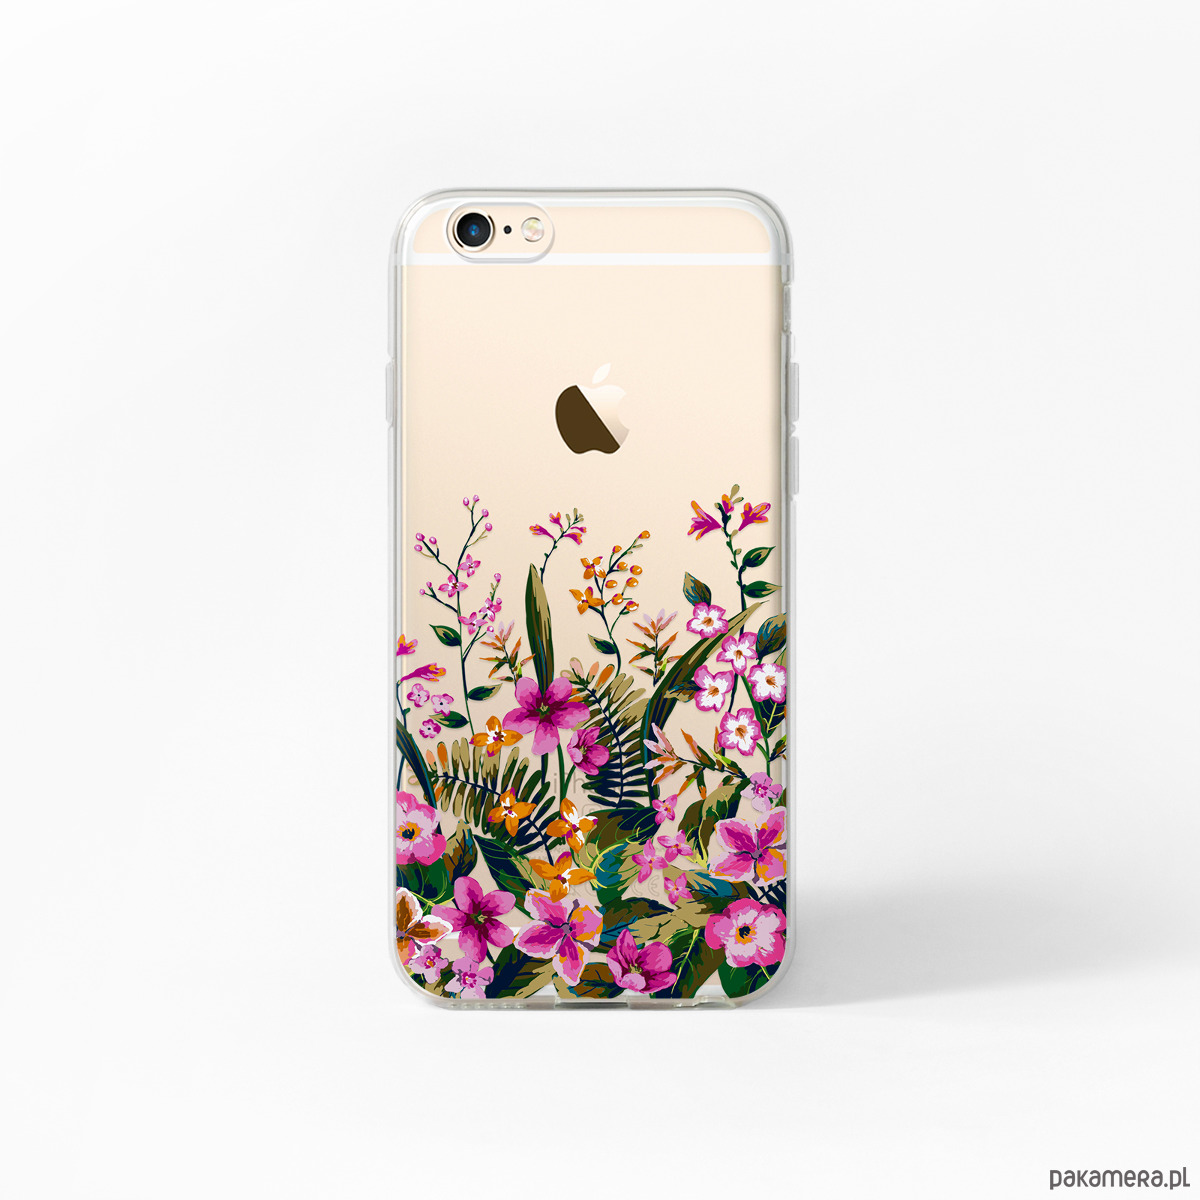 etui iphone 6 6s case obudowa kwiaty tropical pokrowce i etui na telefon. Black Bedroom Furniture Sets. Home Design Ideas